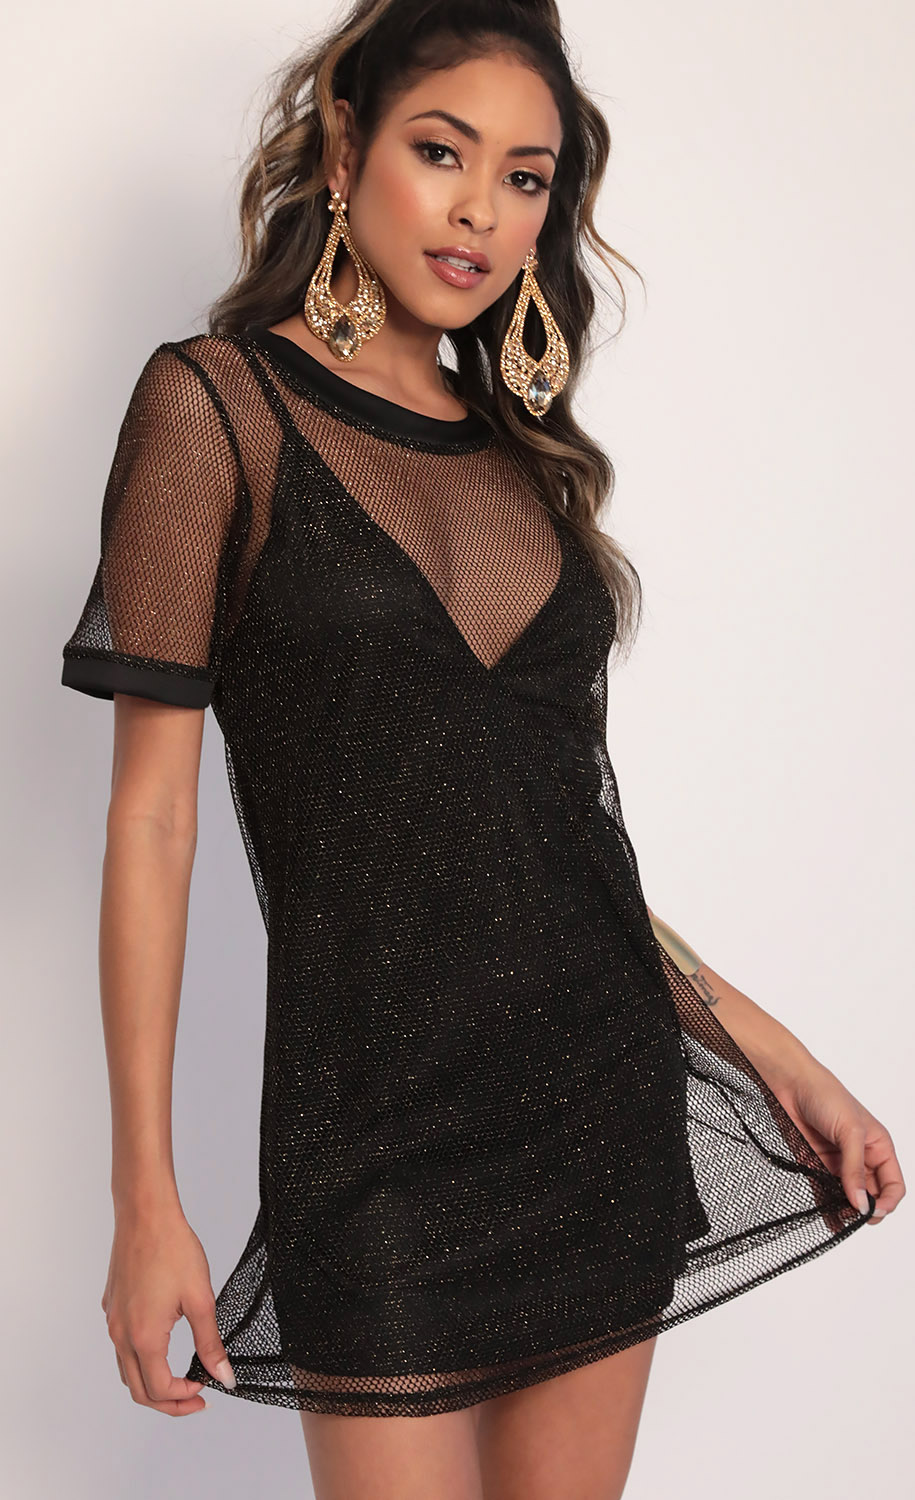 Sparkling Gold Shift Dress in Black